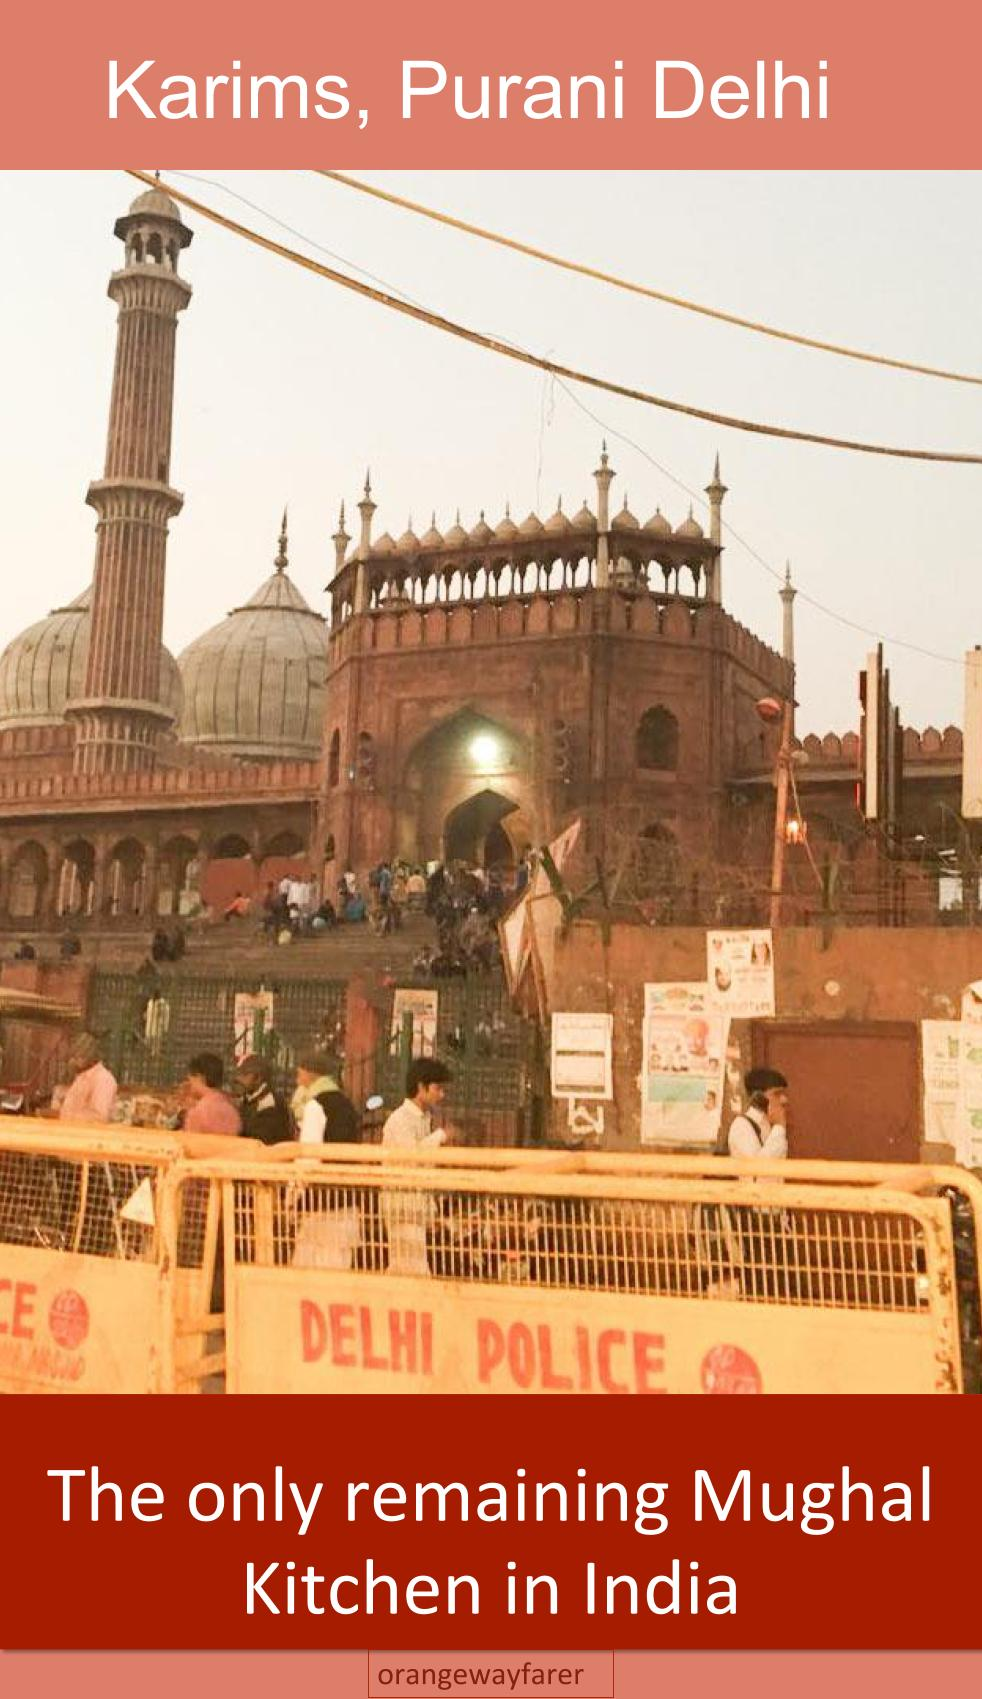 Jama Masjid and the entry to Karims. A cacophony!